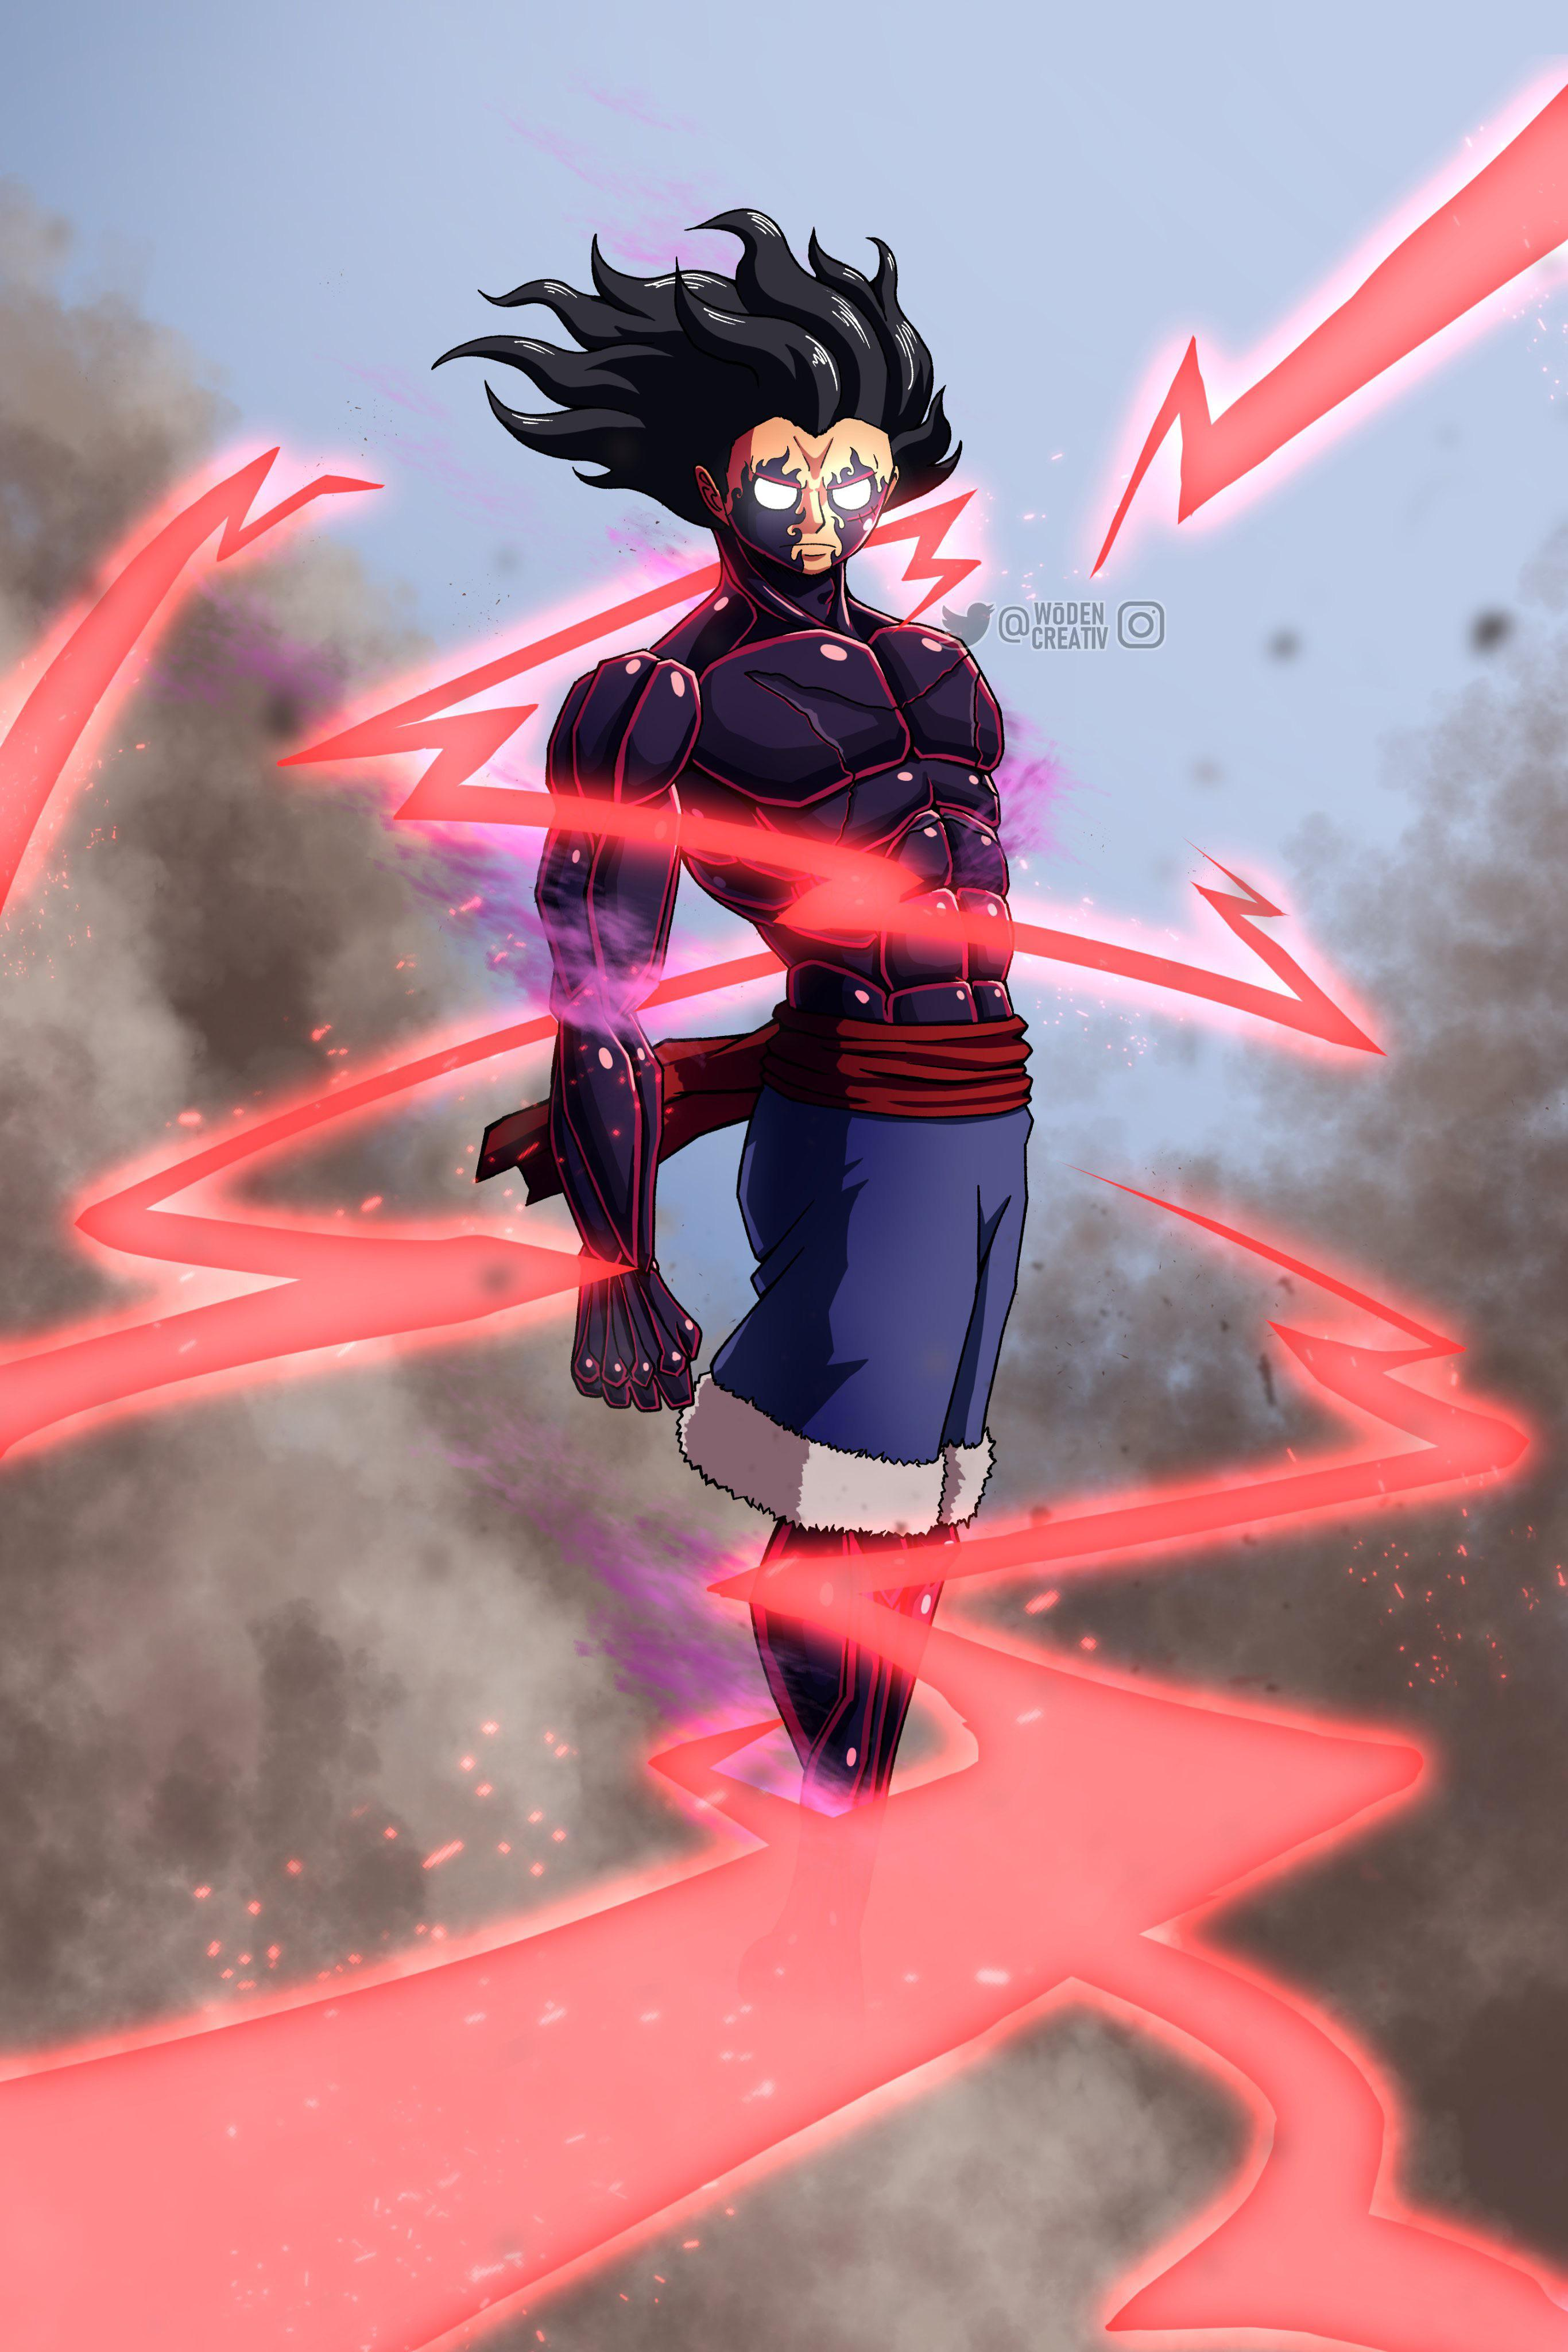 Gear 2 augments luffy's blood to increase base speed. One Piece Luffy Gear 5th